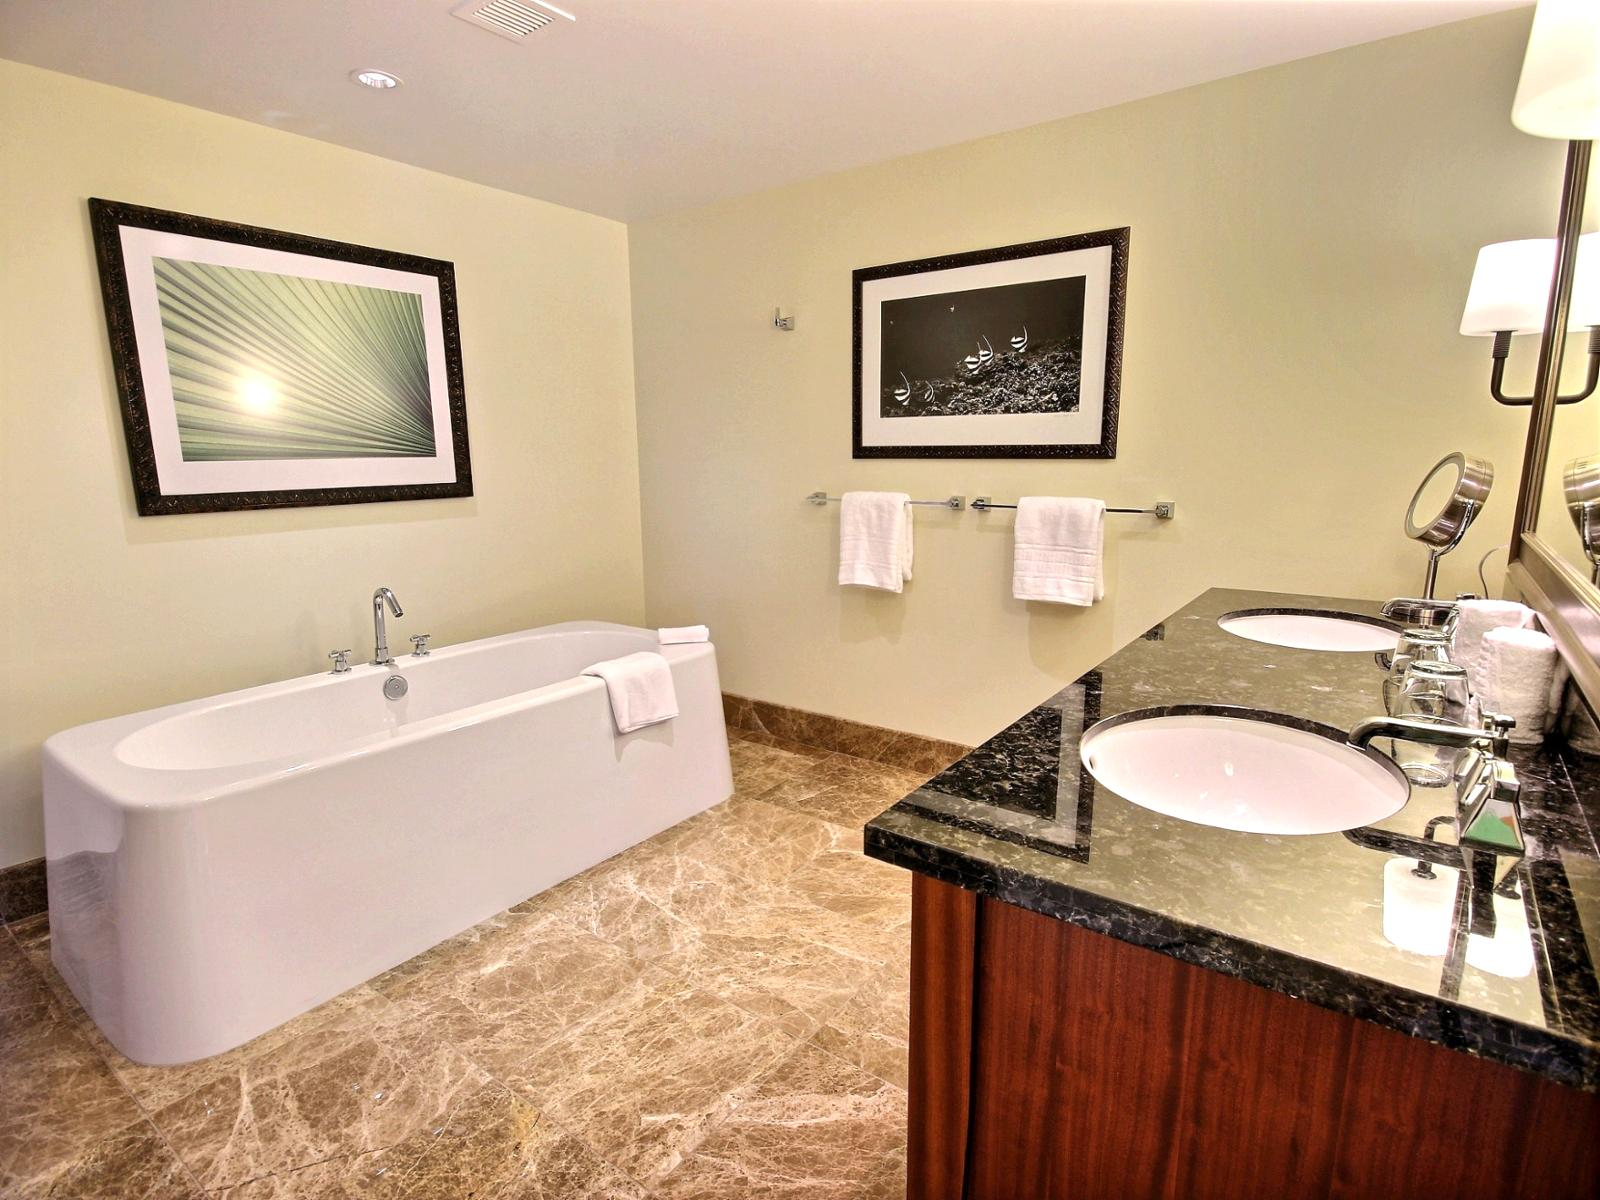 Exquisite master bathroom with stand alone tub, dual sinks, in extra large surround